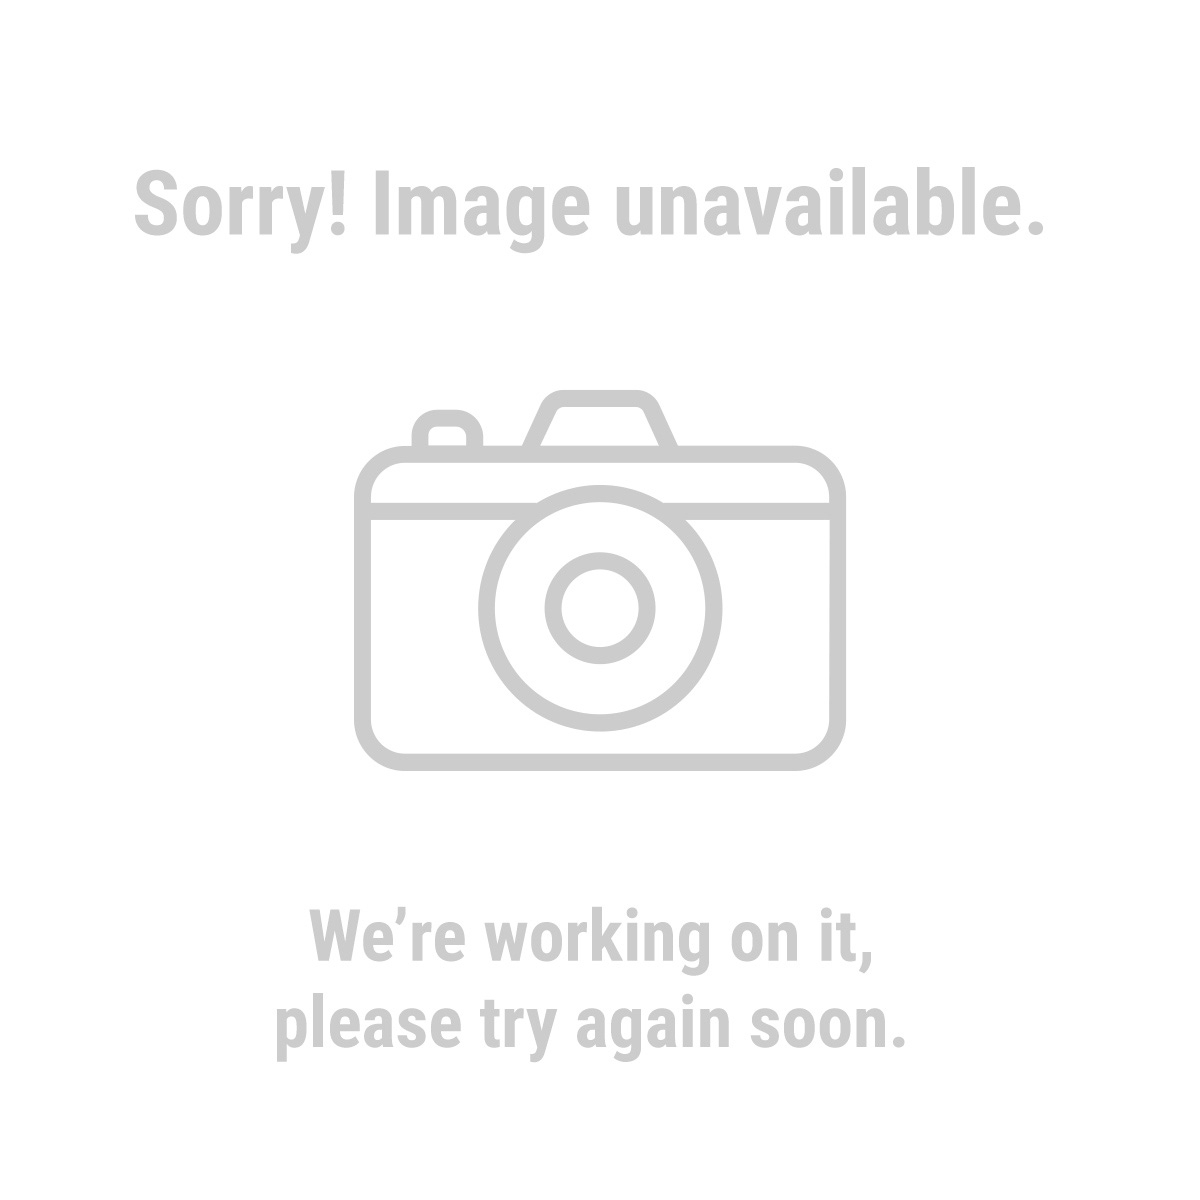 Predator 65 Hp Engine Manual Green Communities Canada 22 Briggs And Stratton Wiring Diagram